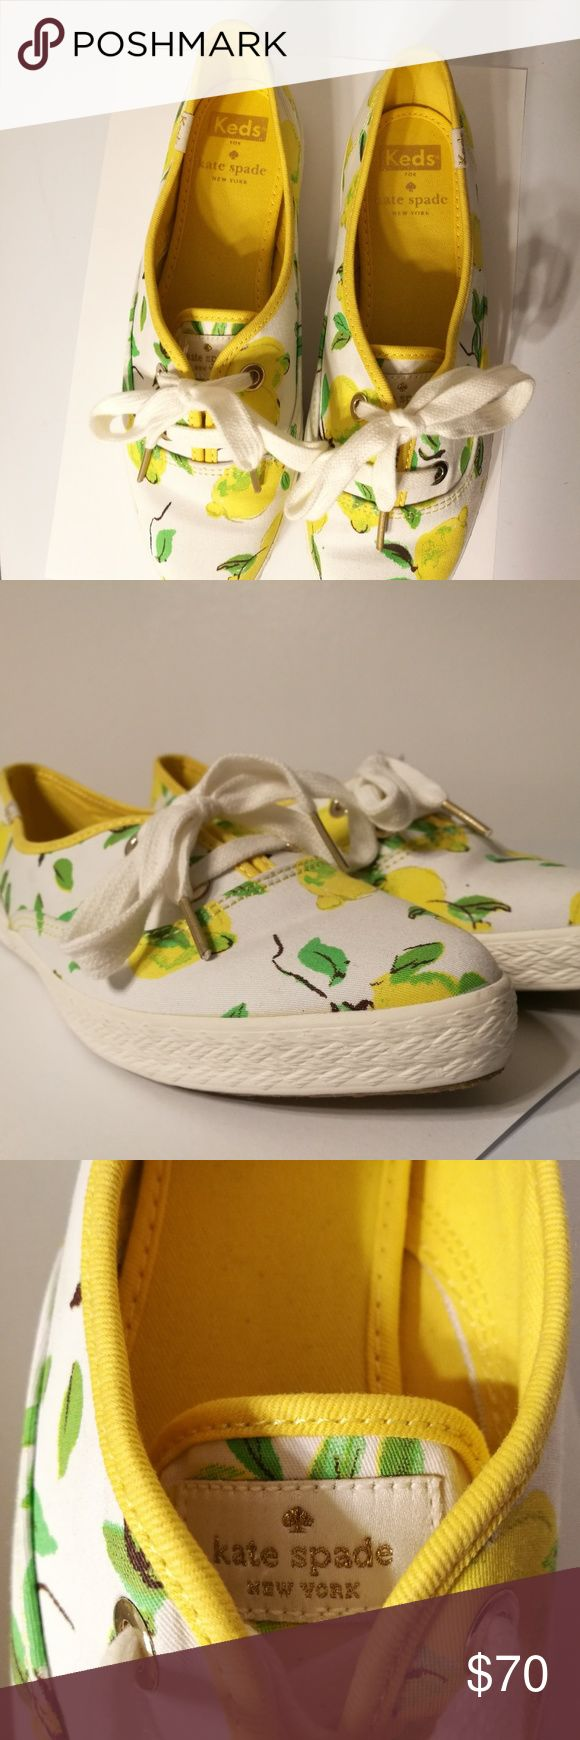 Kate Spade Limited Edition Keds Lemon Pointers a painterly lemon print--inspired by capri-- adds a cheeky kate spade new york flourish to a classic pair of keds canvas sneakers. pair them with with your favorite capris or a flouncy mini skirt.  Shoes are pre-owned, and were used, bottoms have expected stains from use, but sides, tops and all around are in excellent shape. kate spade Shoes Athletic Shoes